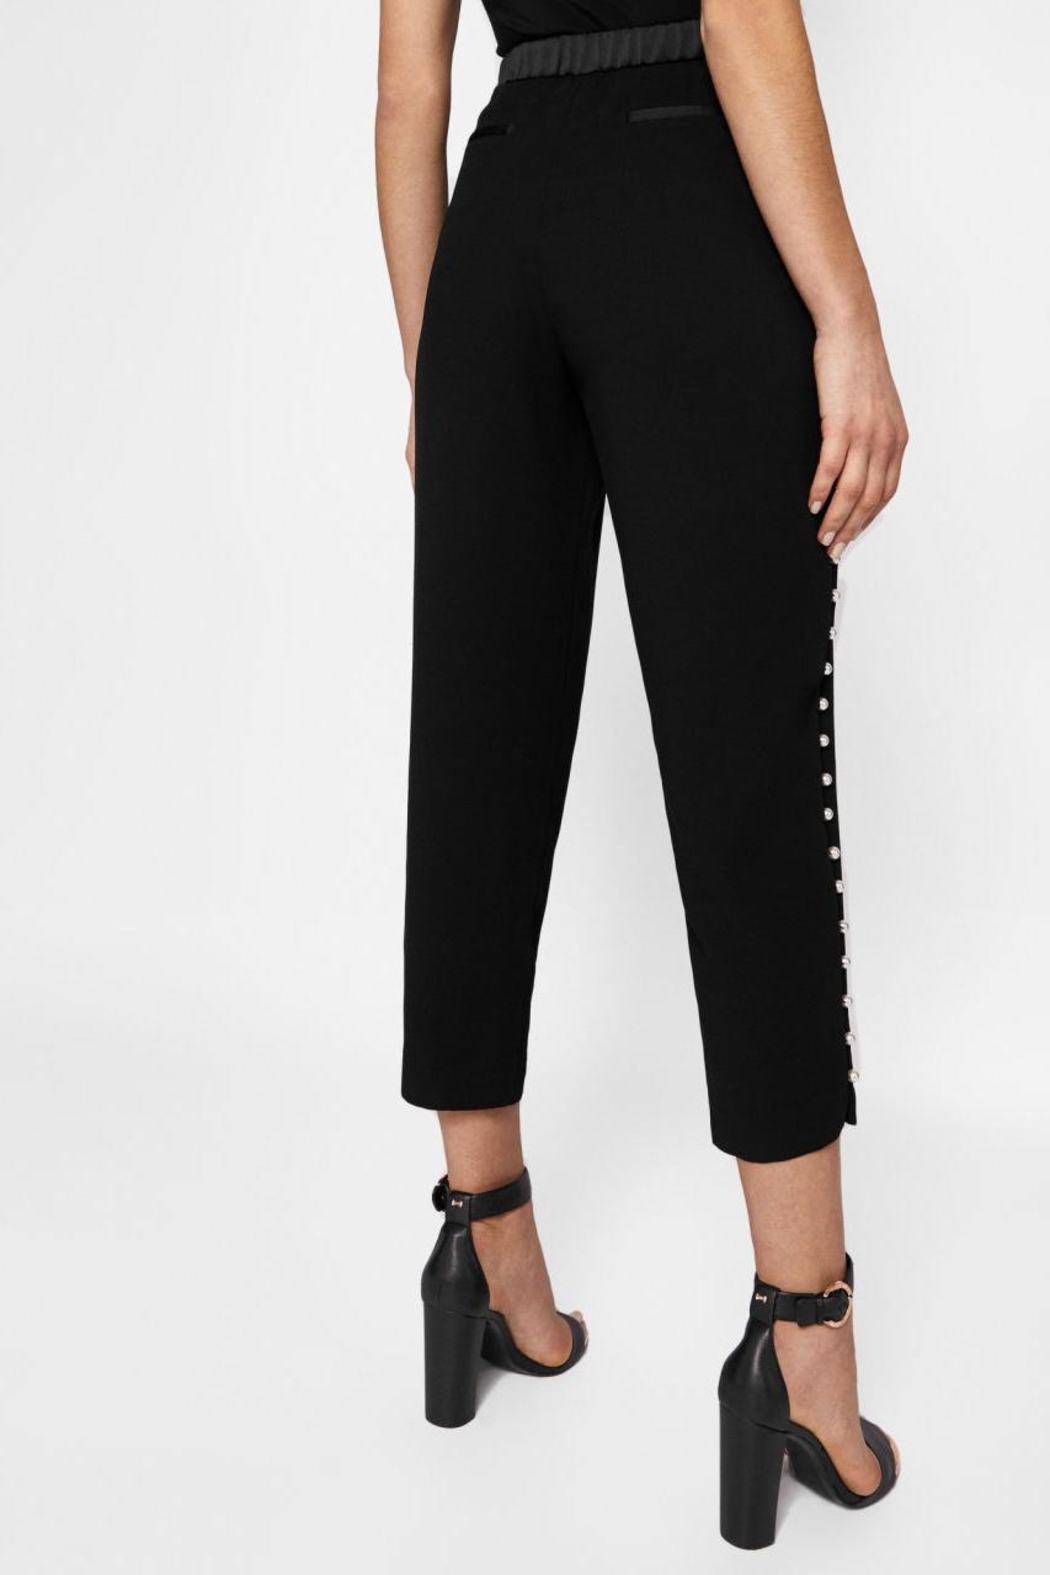 Ted Baker Pearl Detail Pant - Side Cropped Image